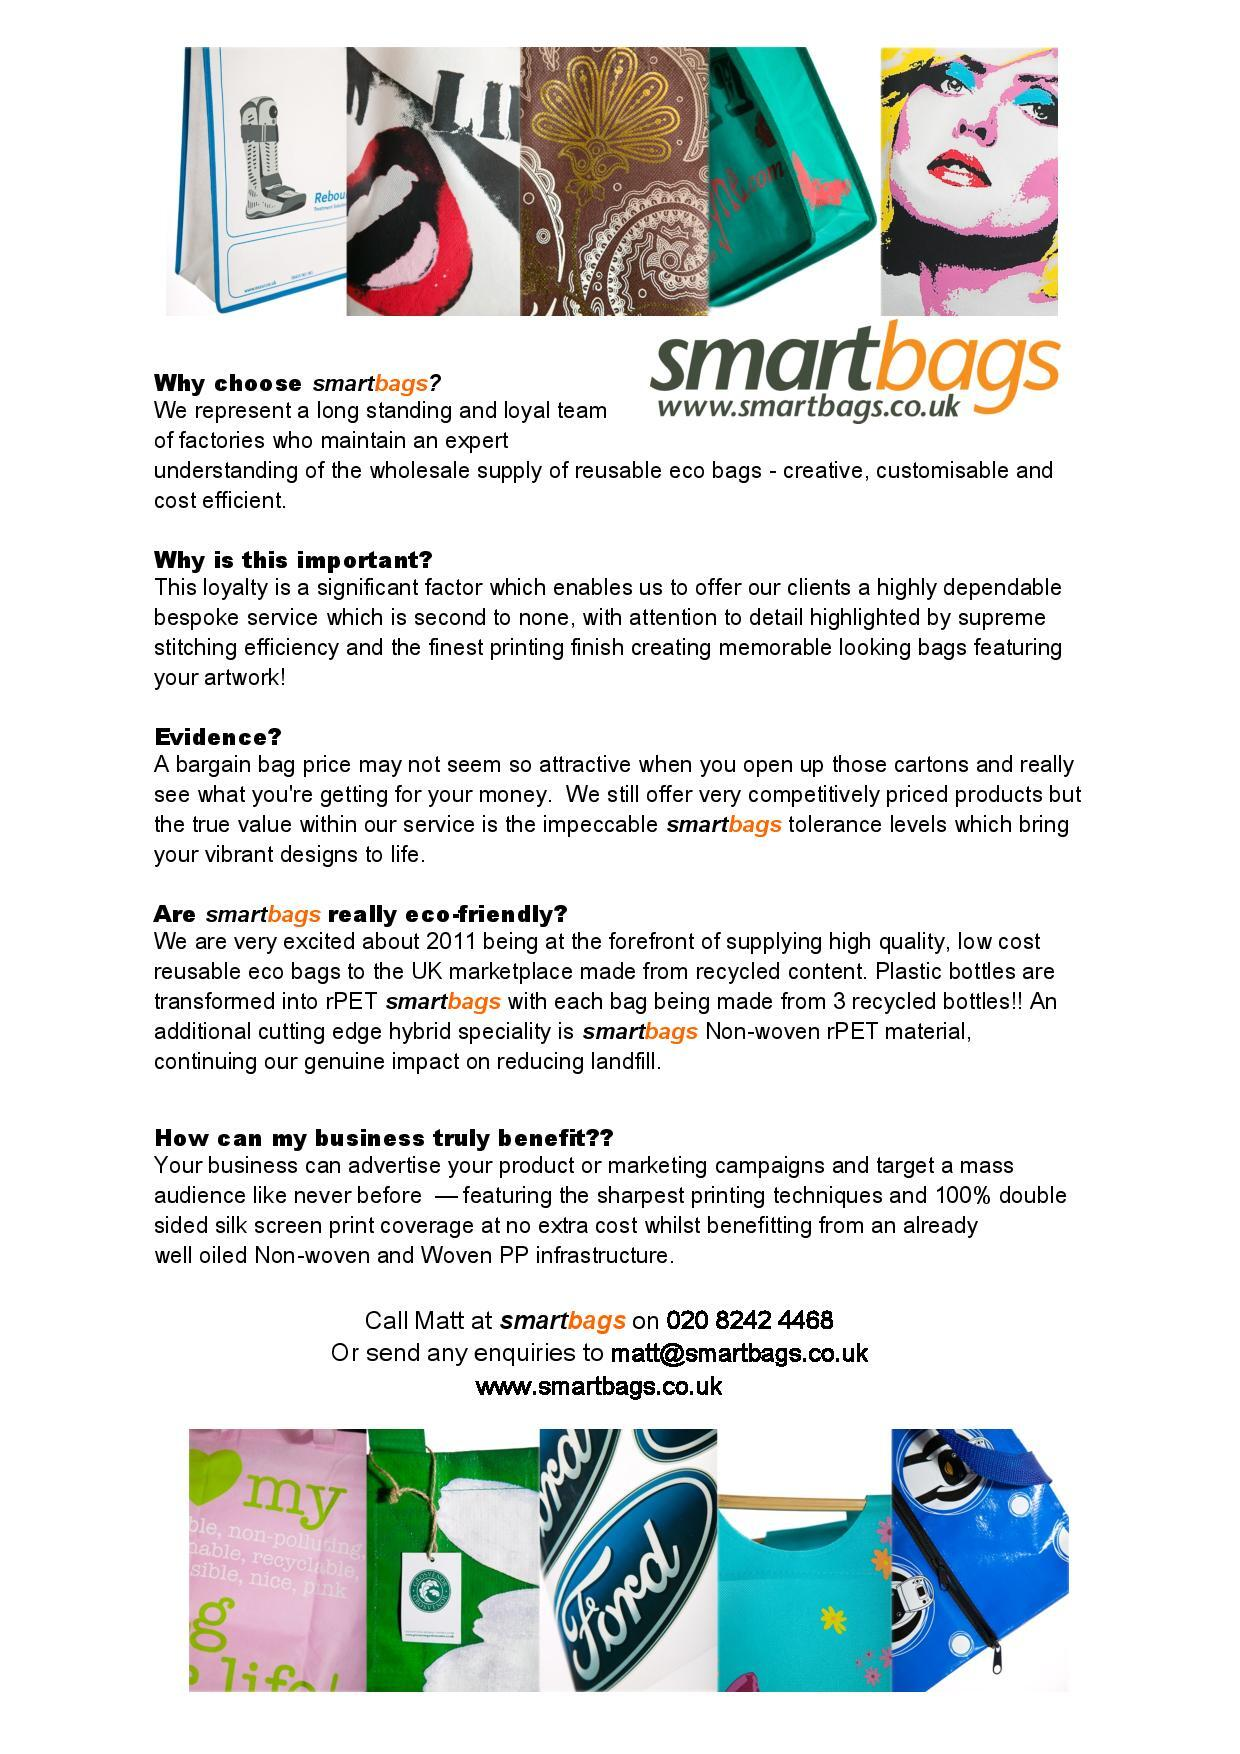 Why Choose Smartbags